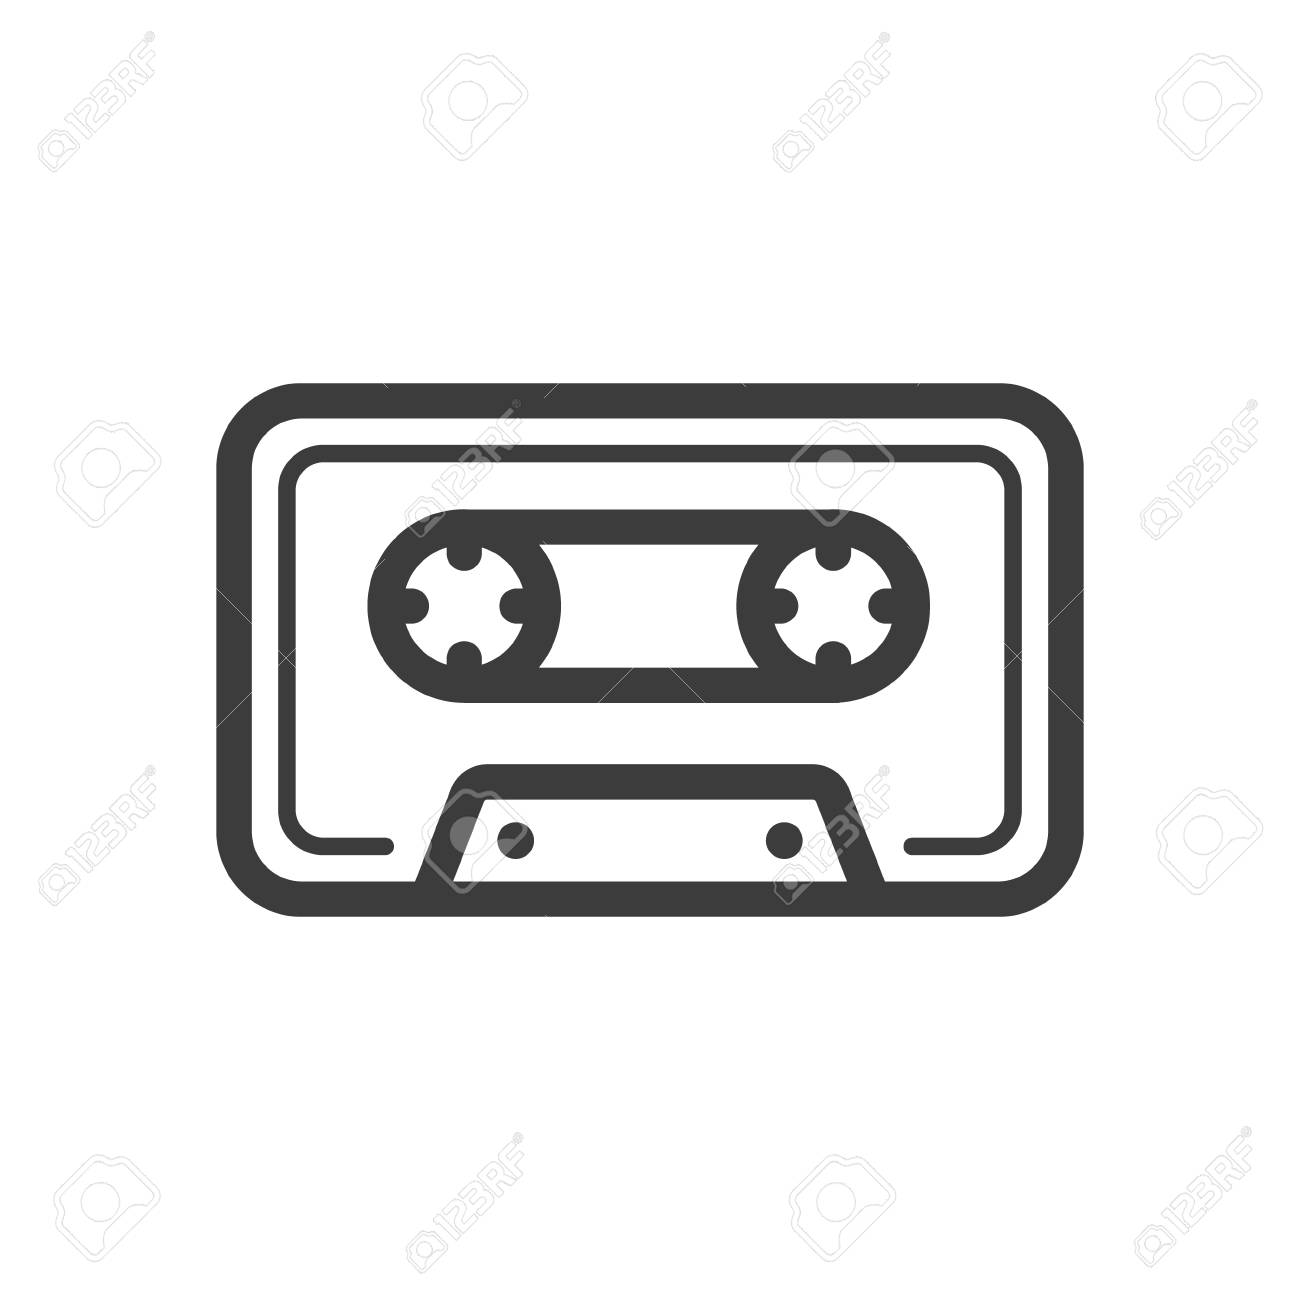 Black and white simple vector line art icon of old school music